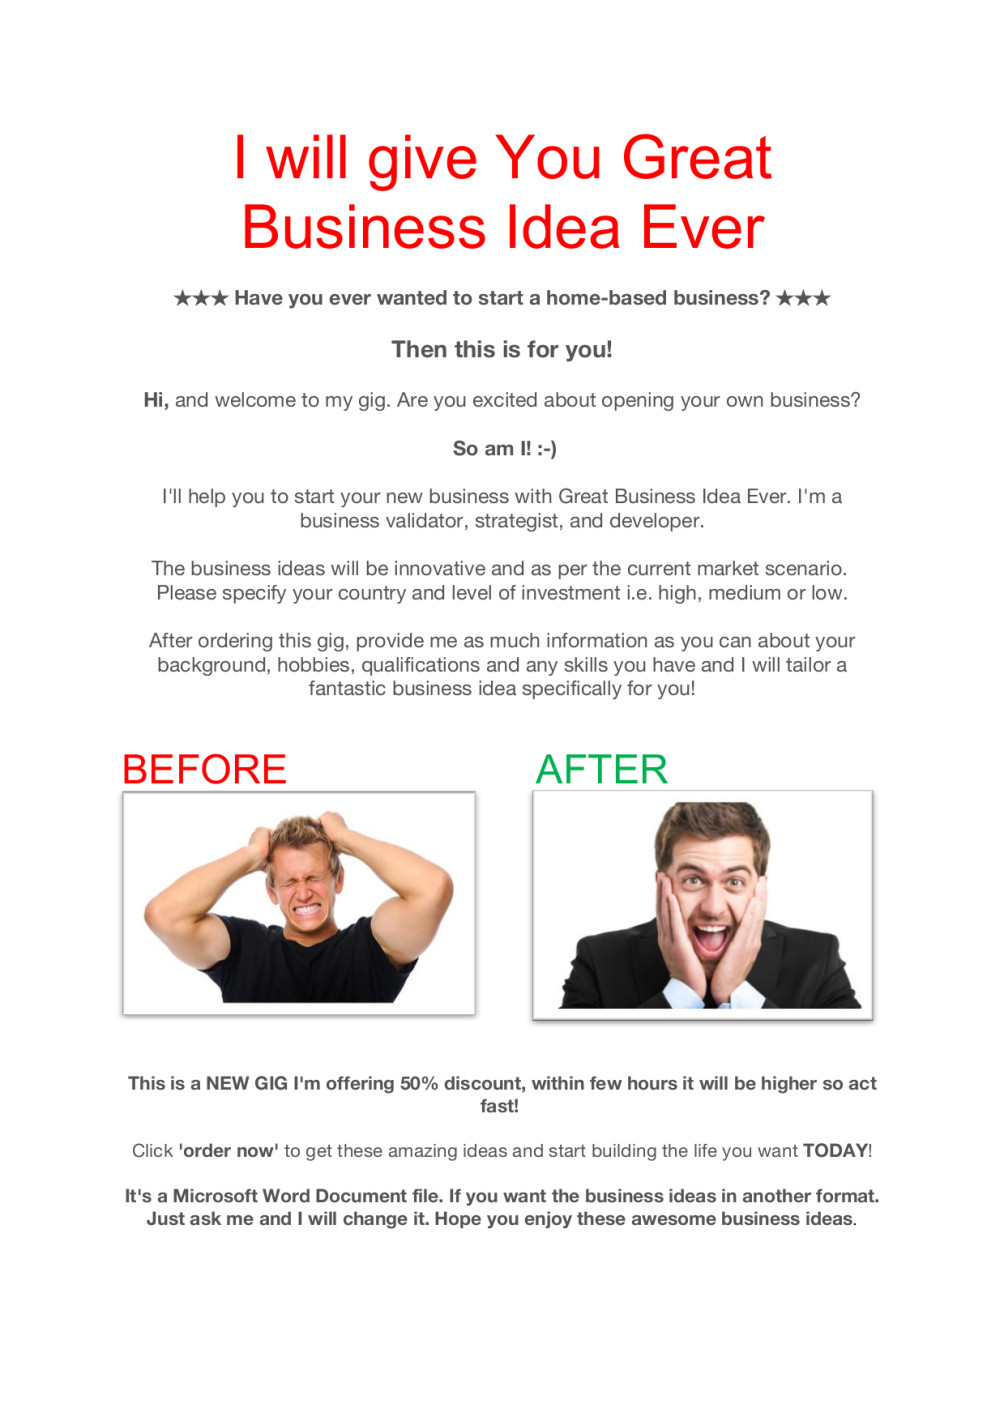 Give you great business idea ever by Obayedulislam